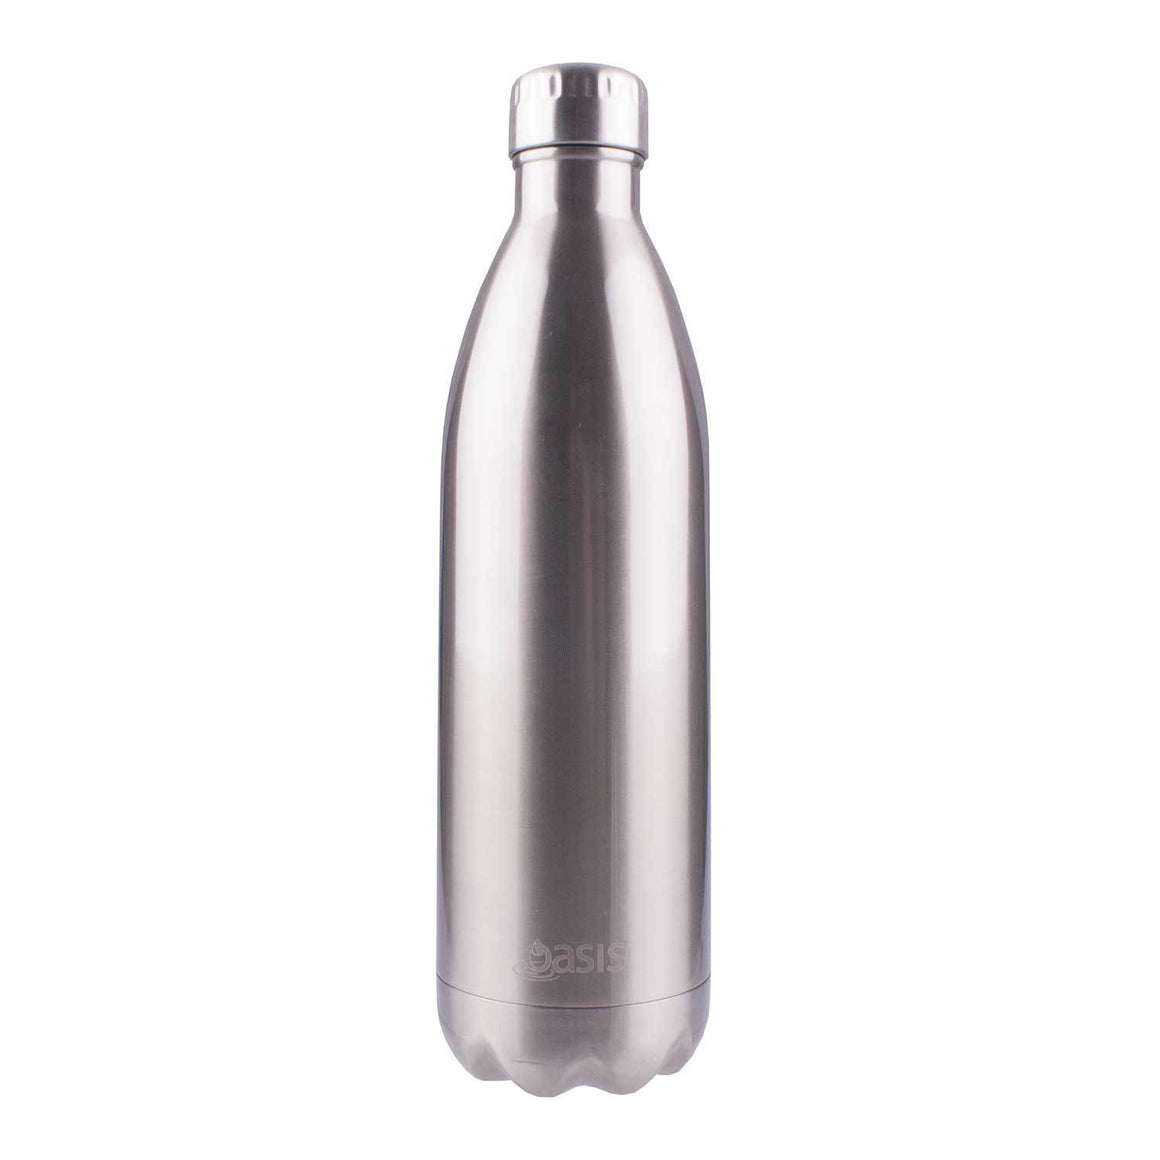 Oasis Insulated Stainless Steel Drink Bottle 1Lt Silver - stuff-n-things